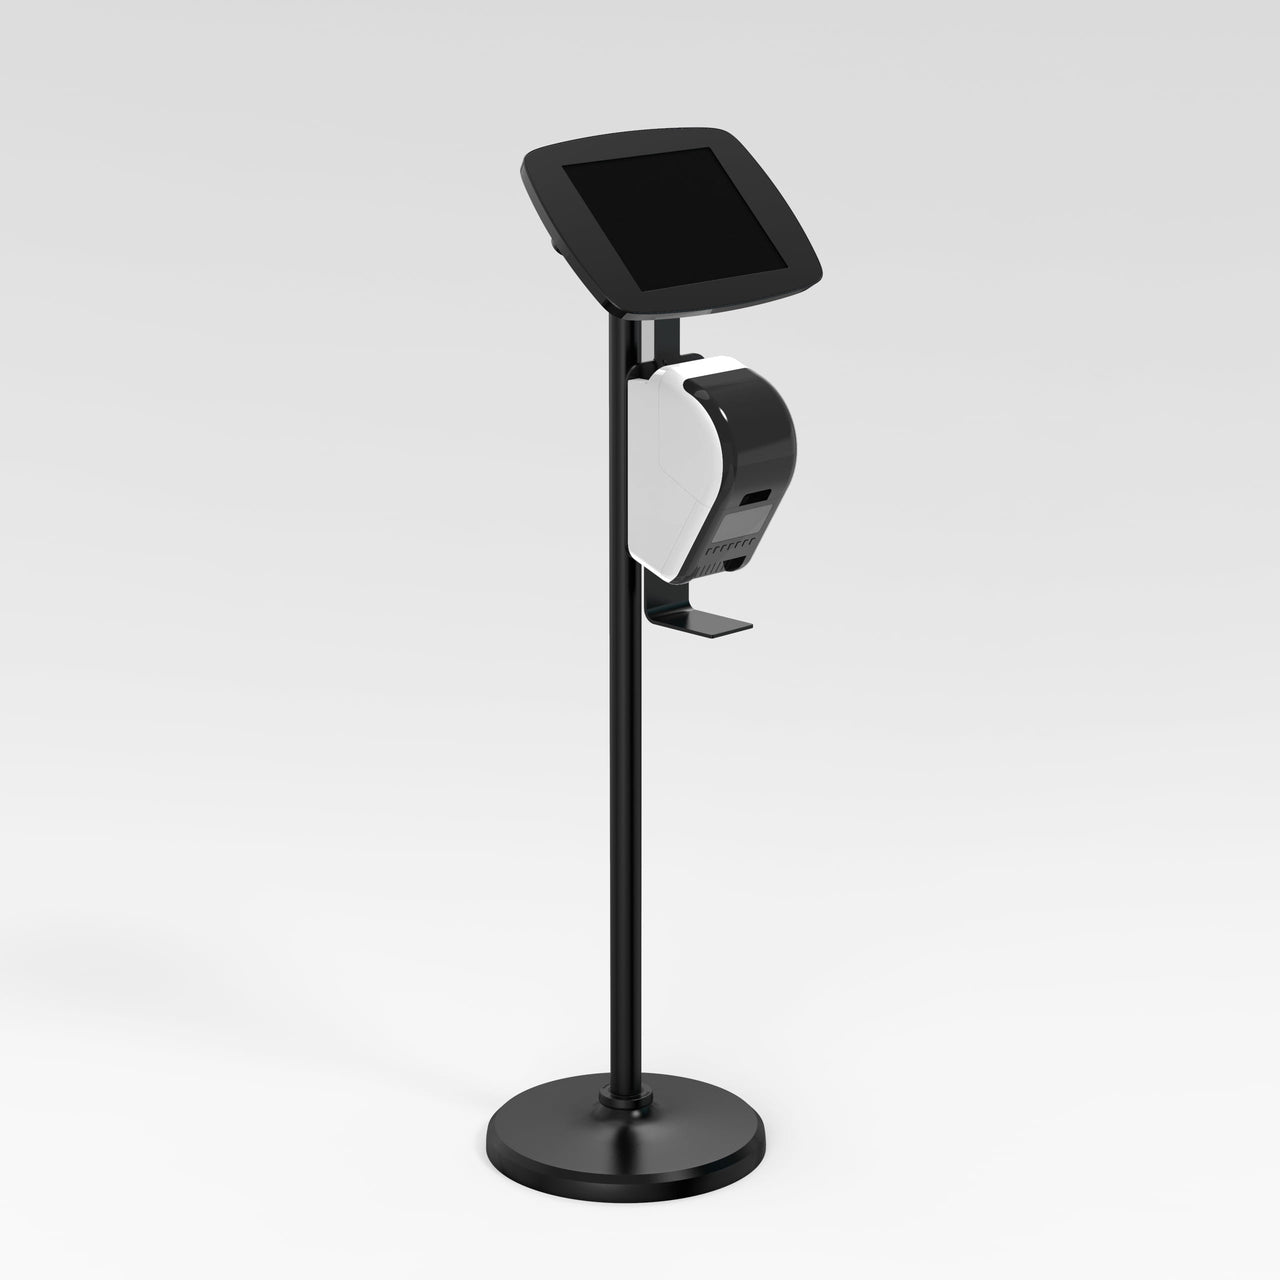 Bouncepad Floorstanding Brother - A secure tablet & iPad floor stand in black.